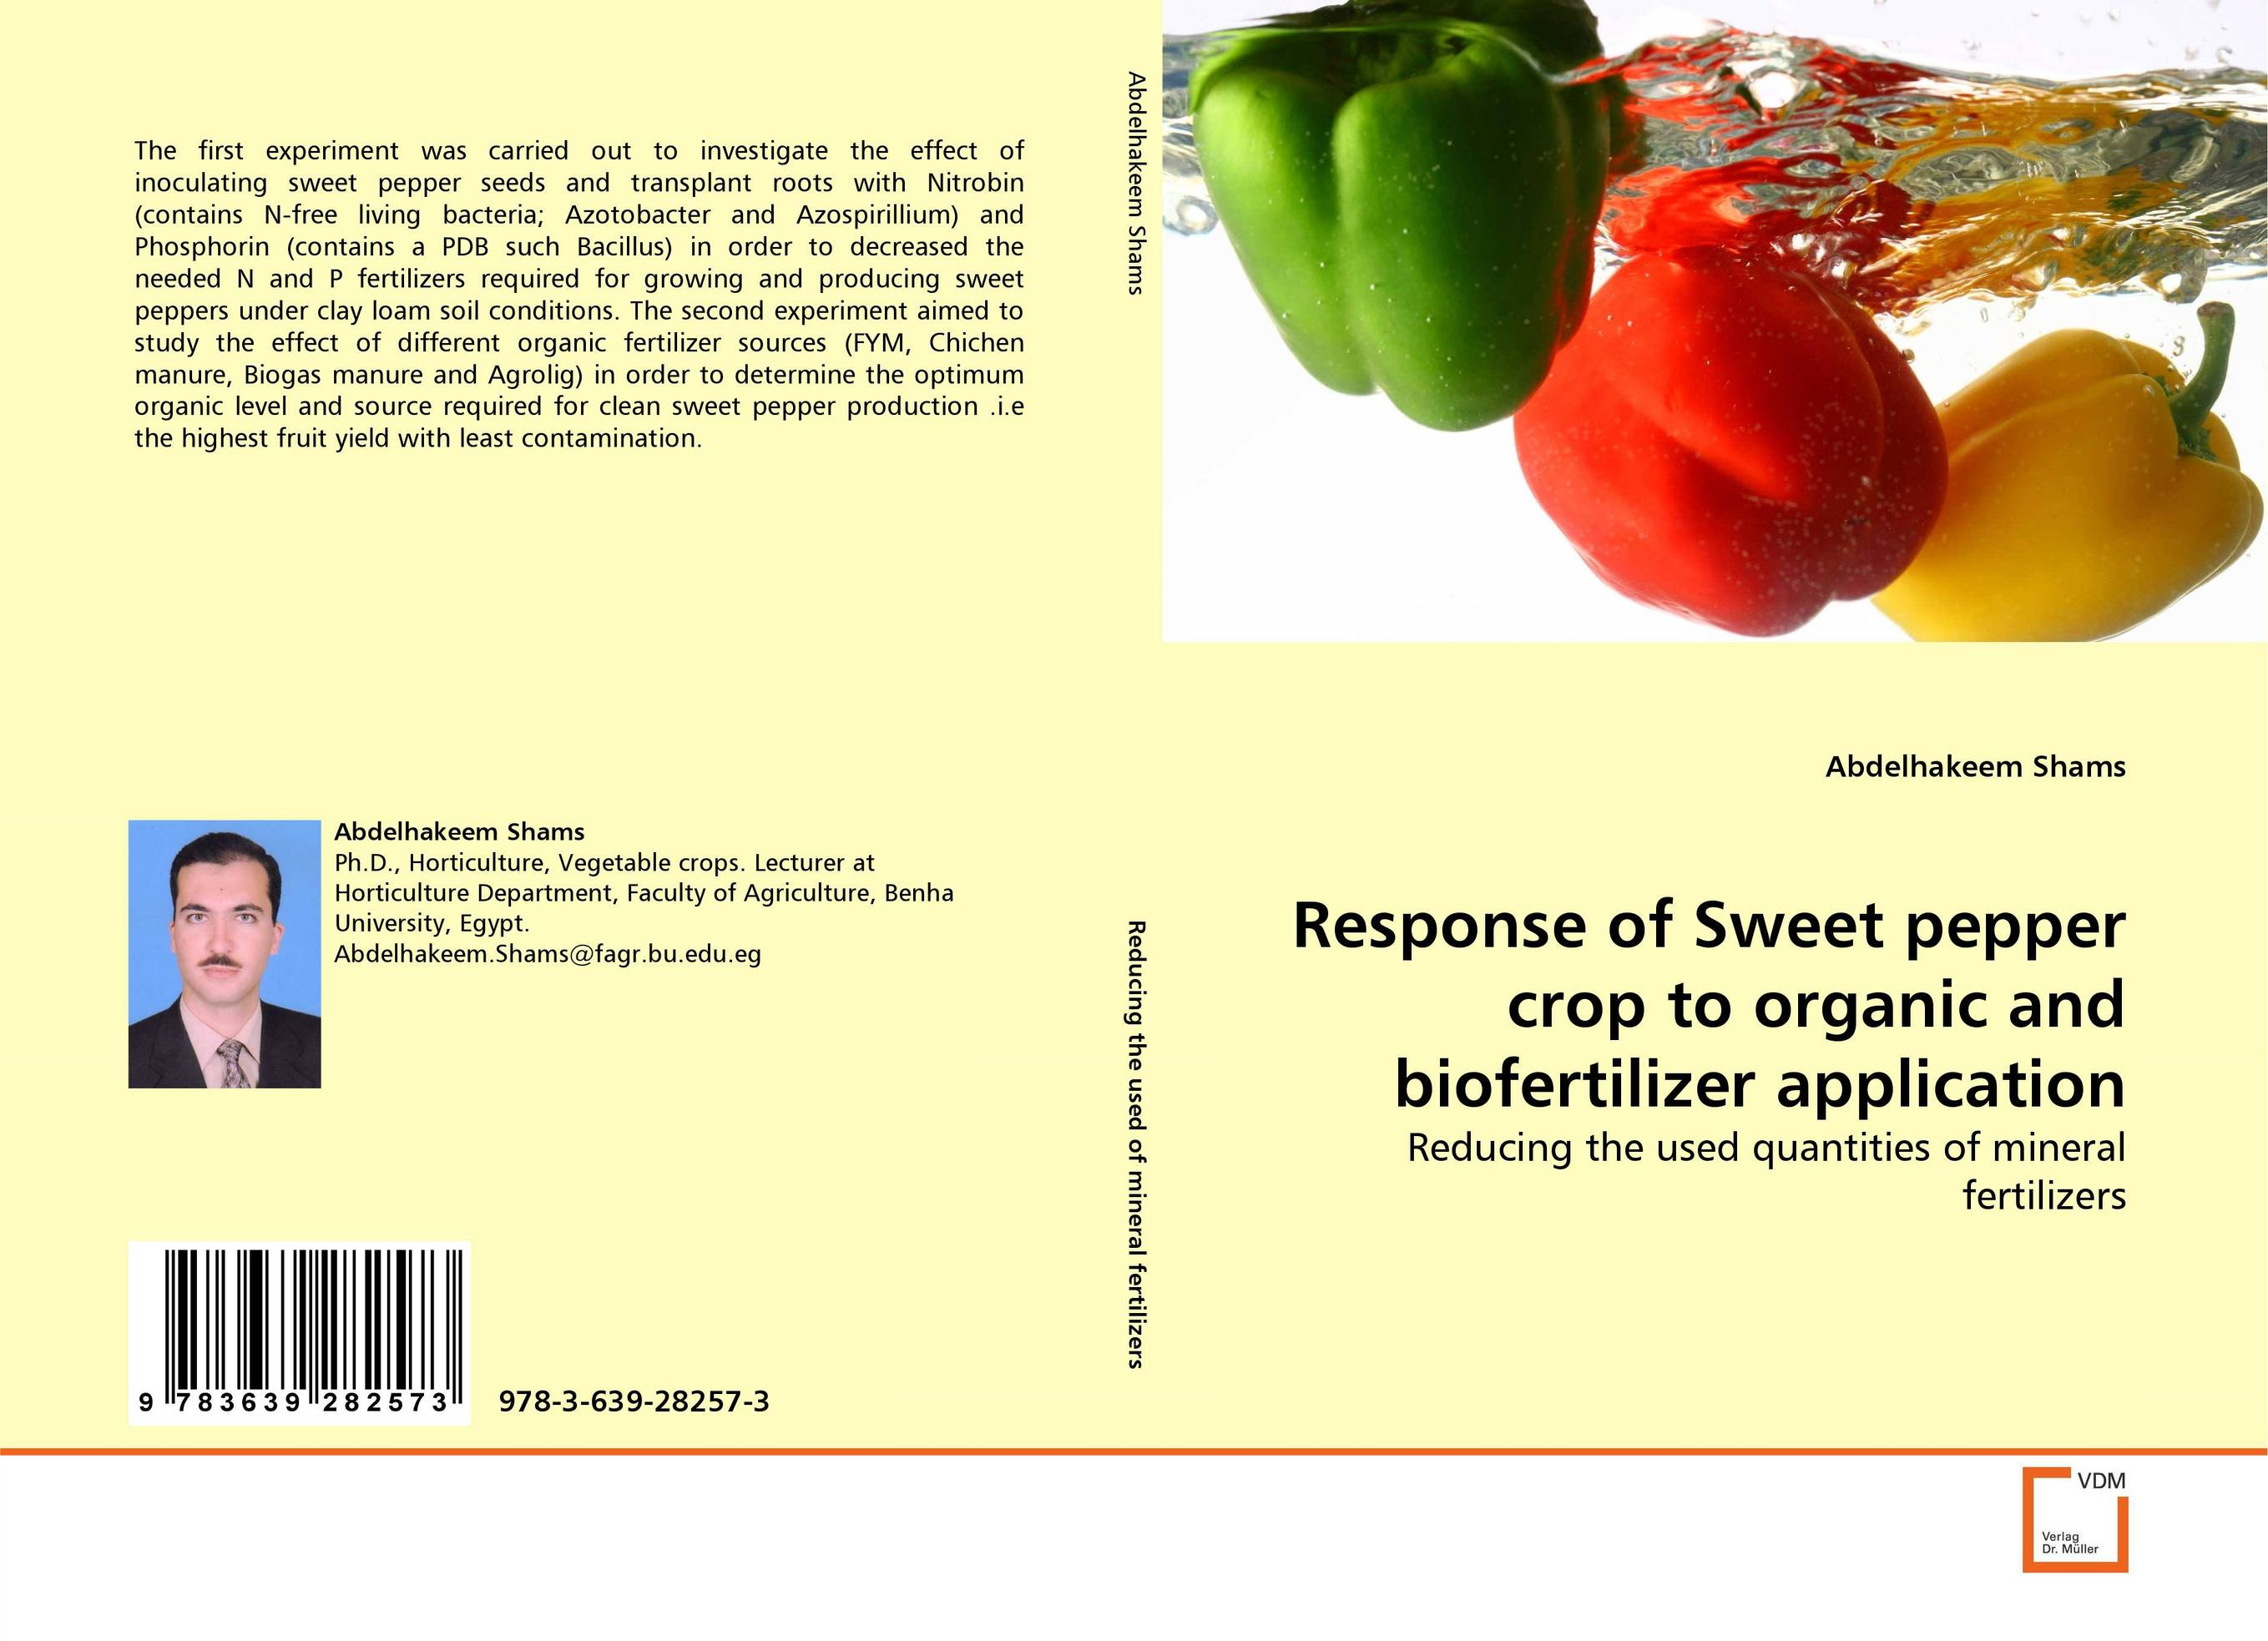 Response of Sweet pepper crop to organic and biofertilizer application patrick p the curious charms of arthur pepper